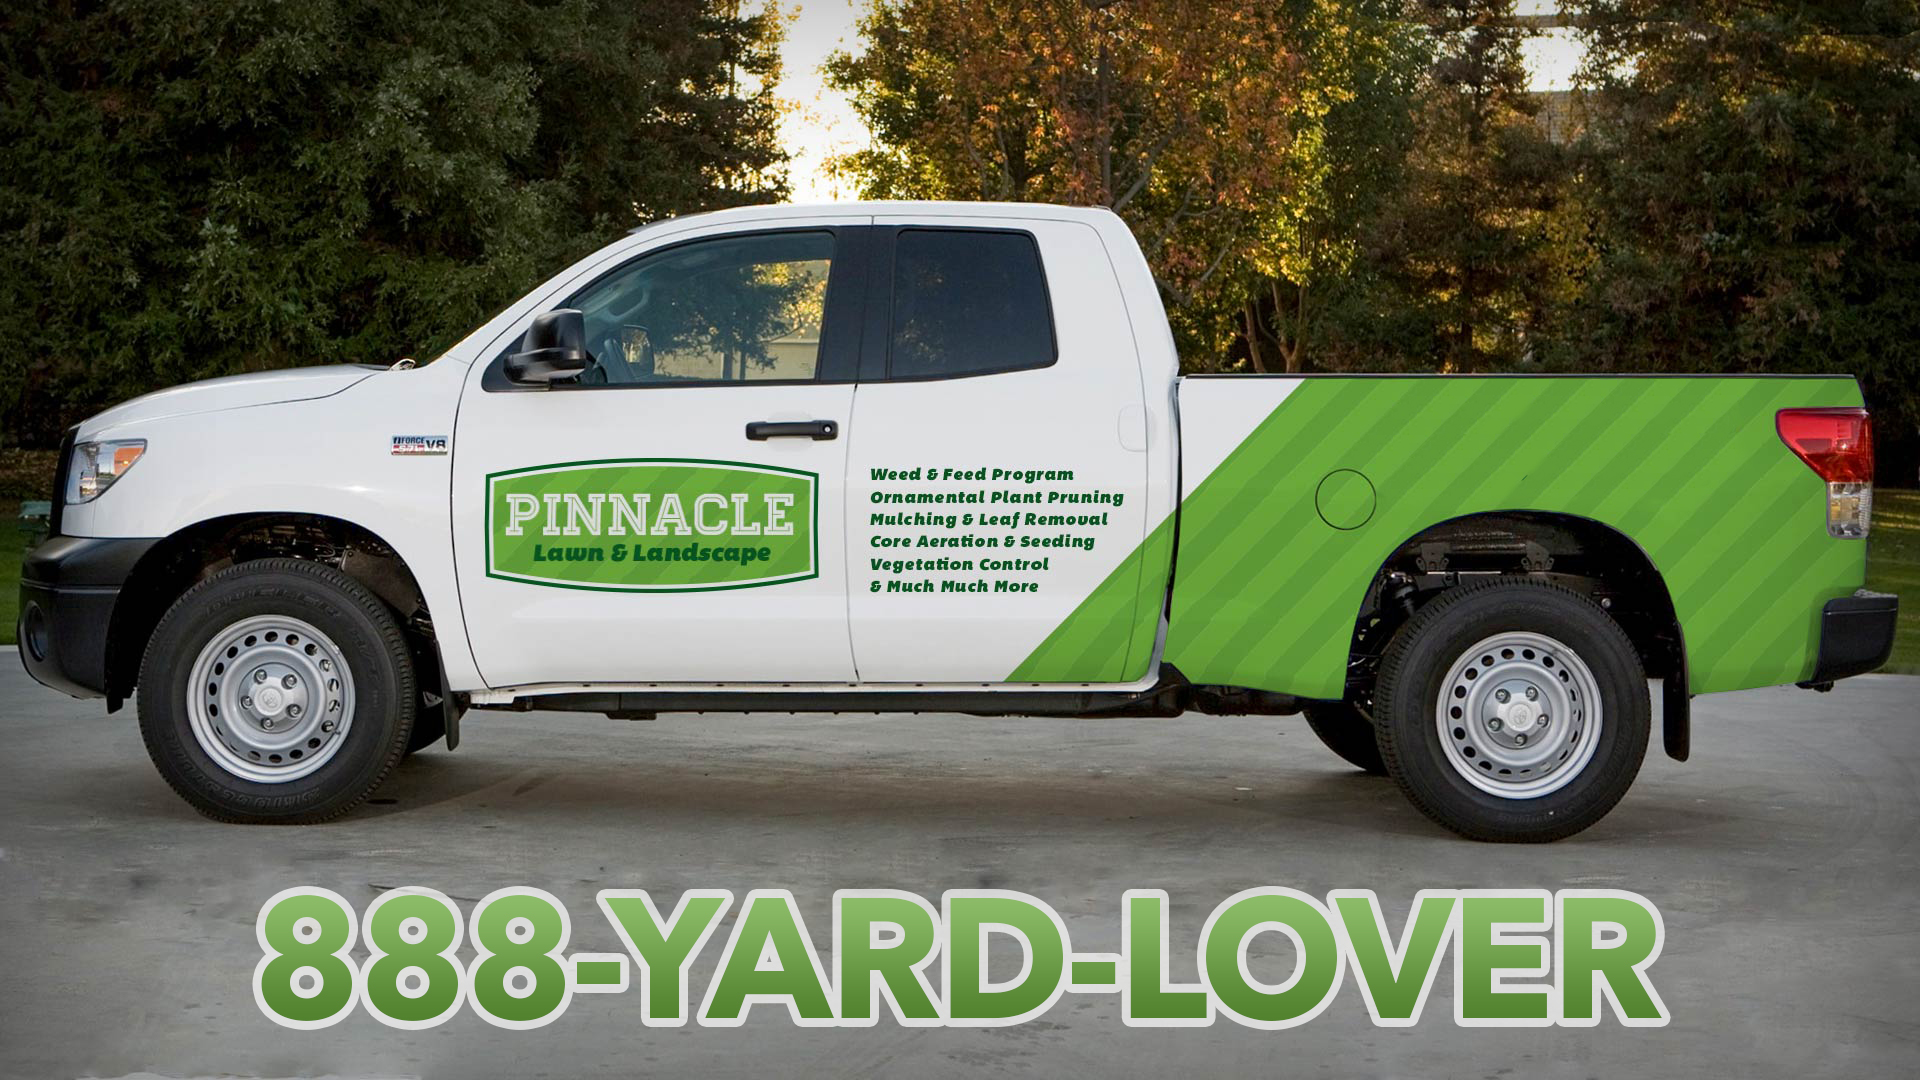 Pinnacle Lawn and Landscape truck using 1-888-YARD-LOVER